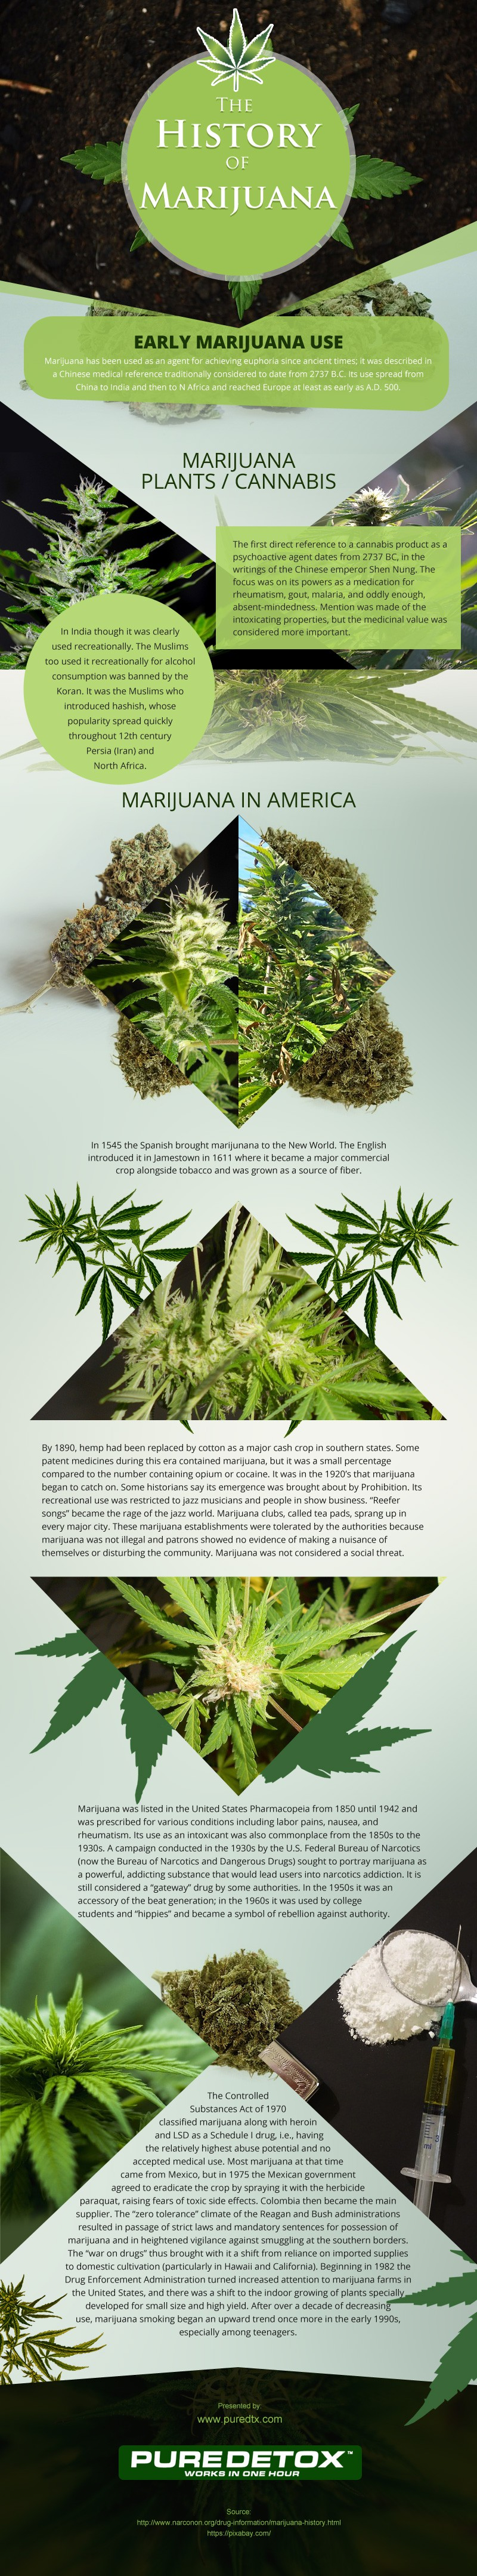 The-History-of-Marijuana Infographic